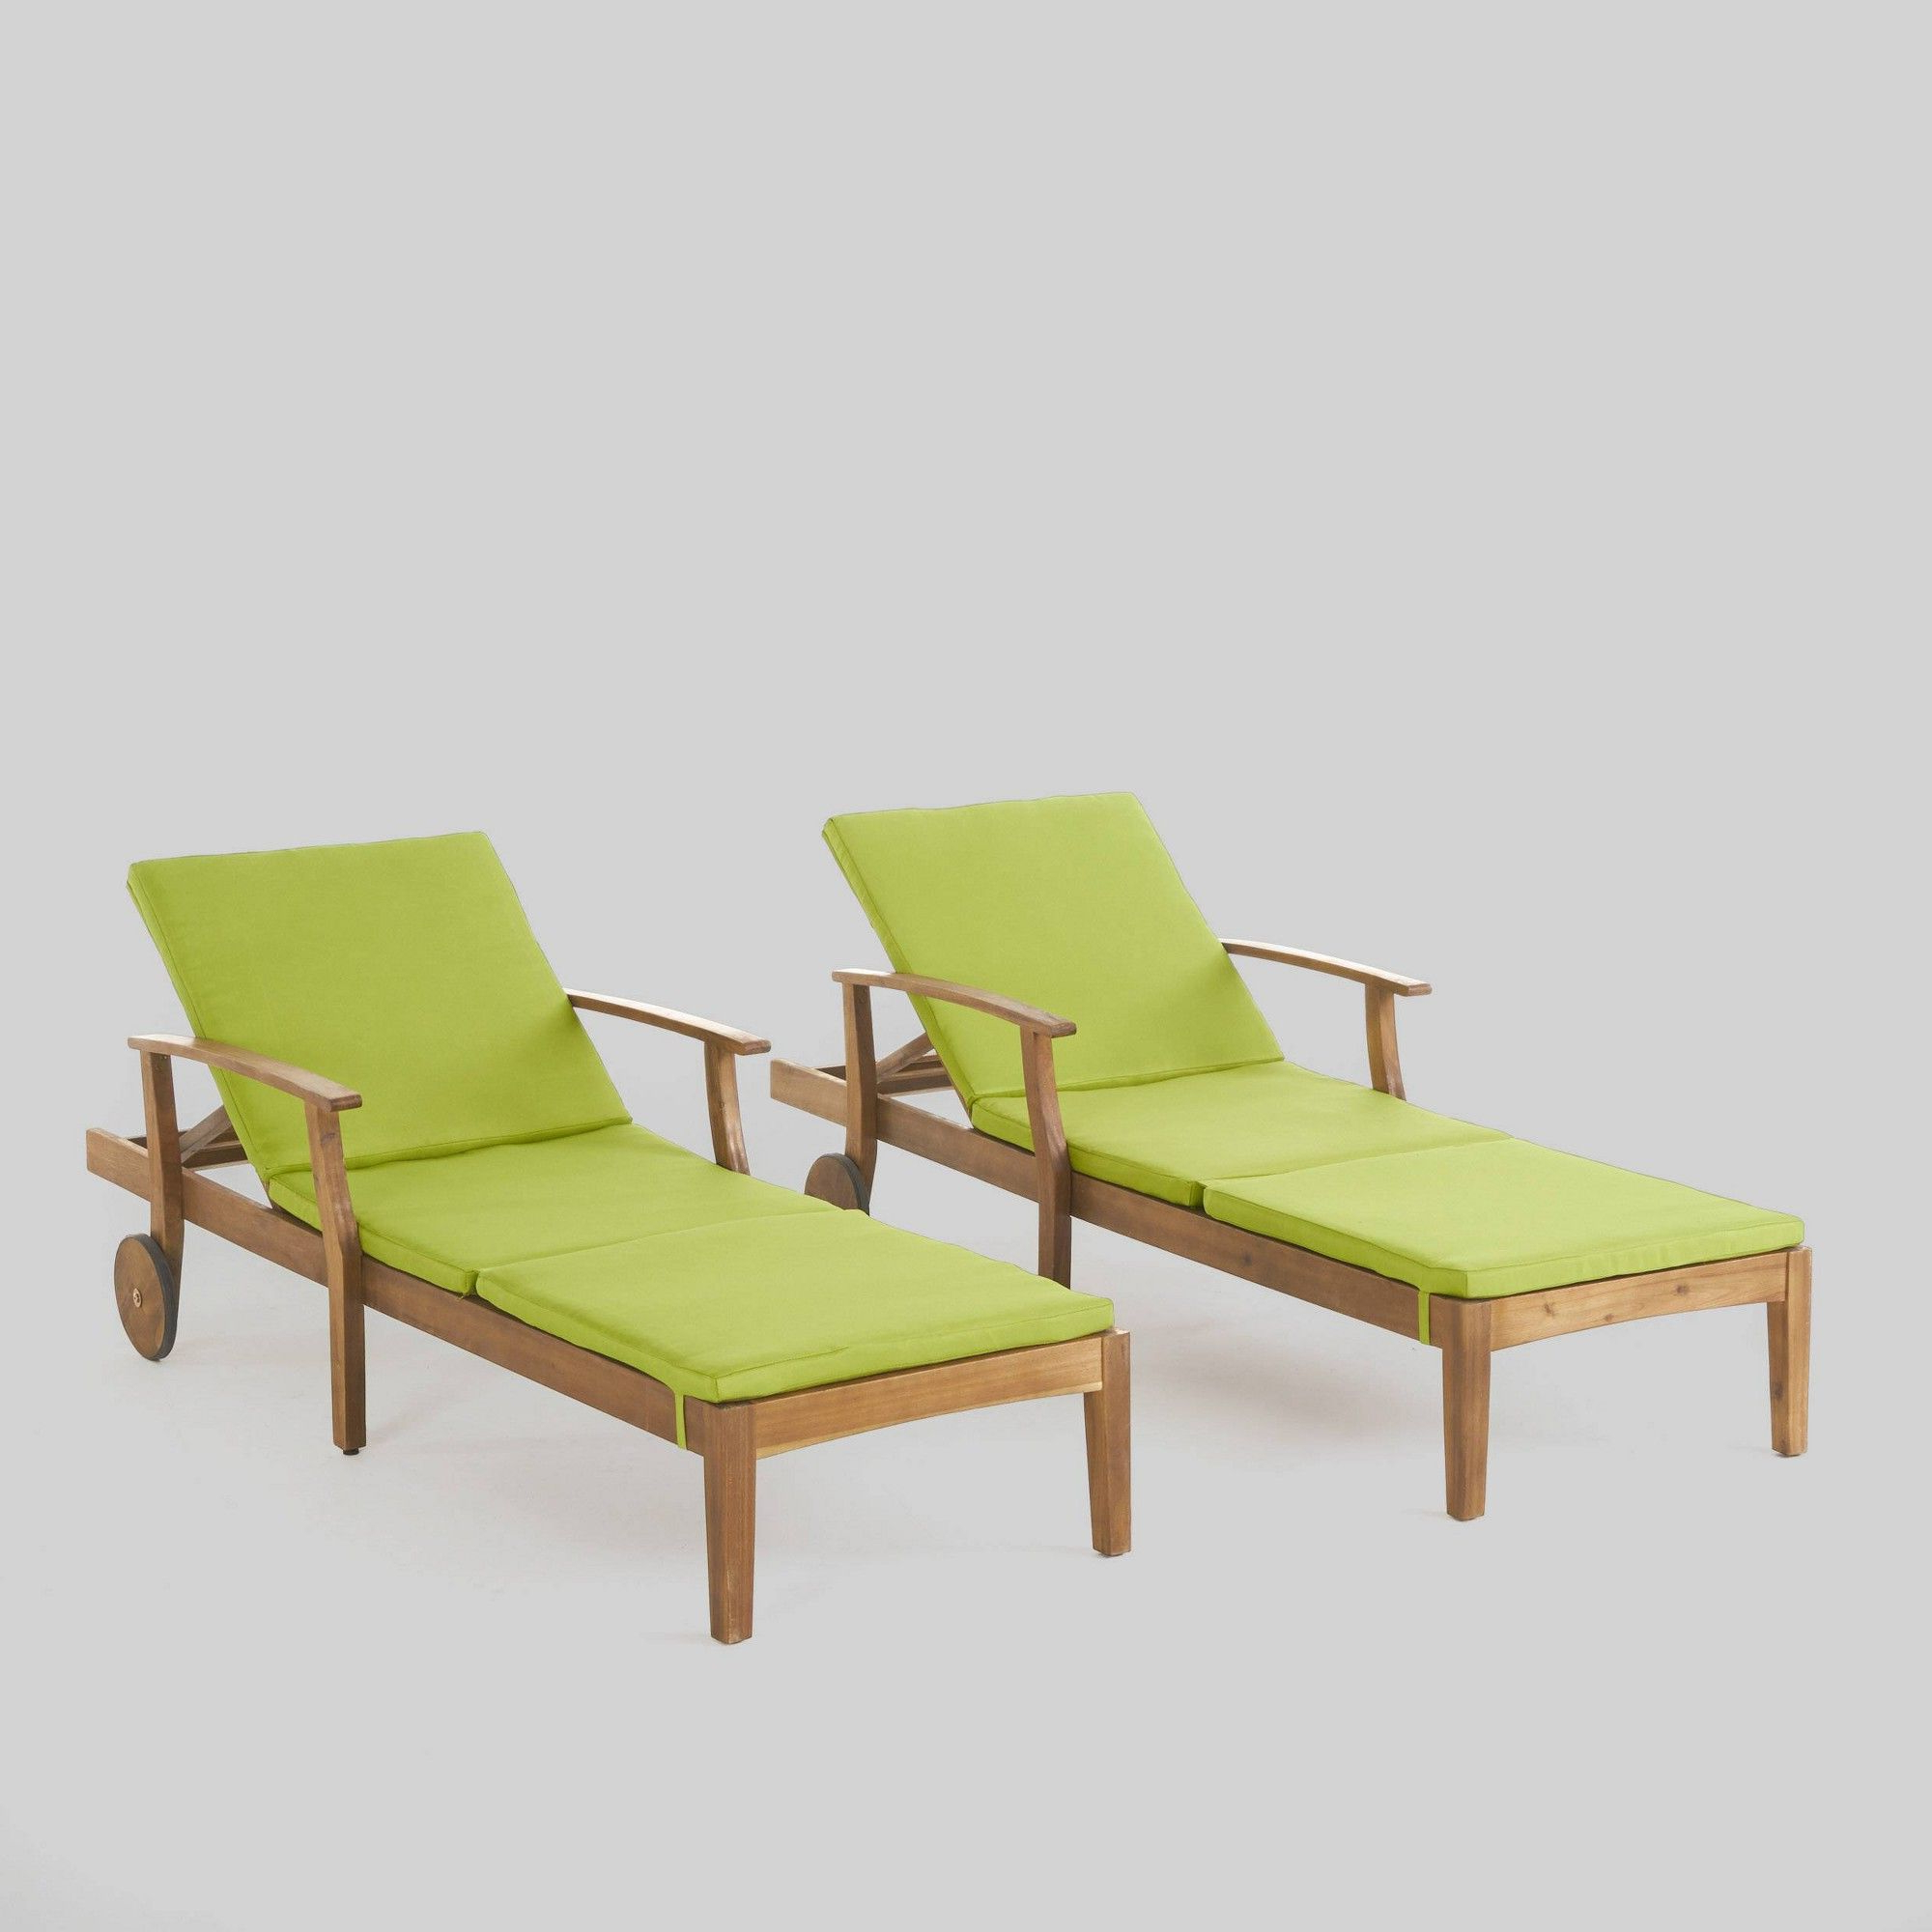 Well Known Perla Outdoor Acacia Wood Chaise Lounge With Cushion With Perla 2pk Acacia Wood Patio Chaise Lounge – Teak/green (View 12 of 25)